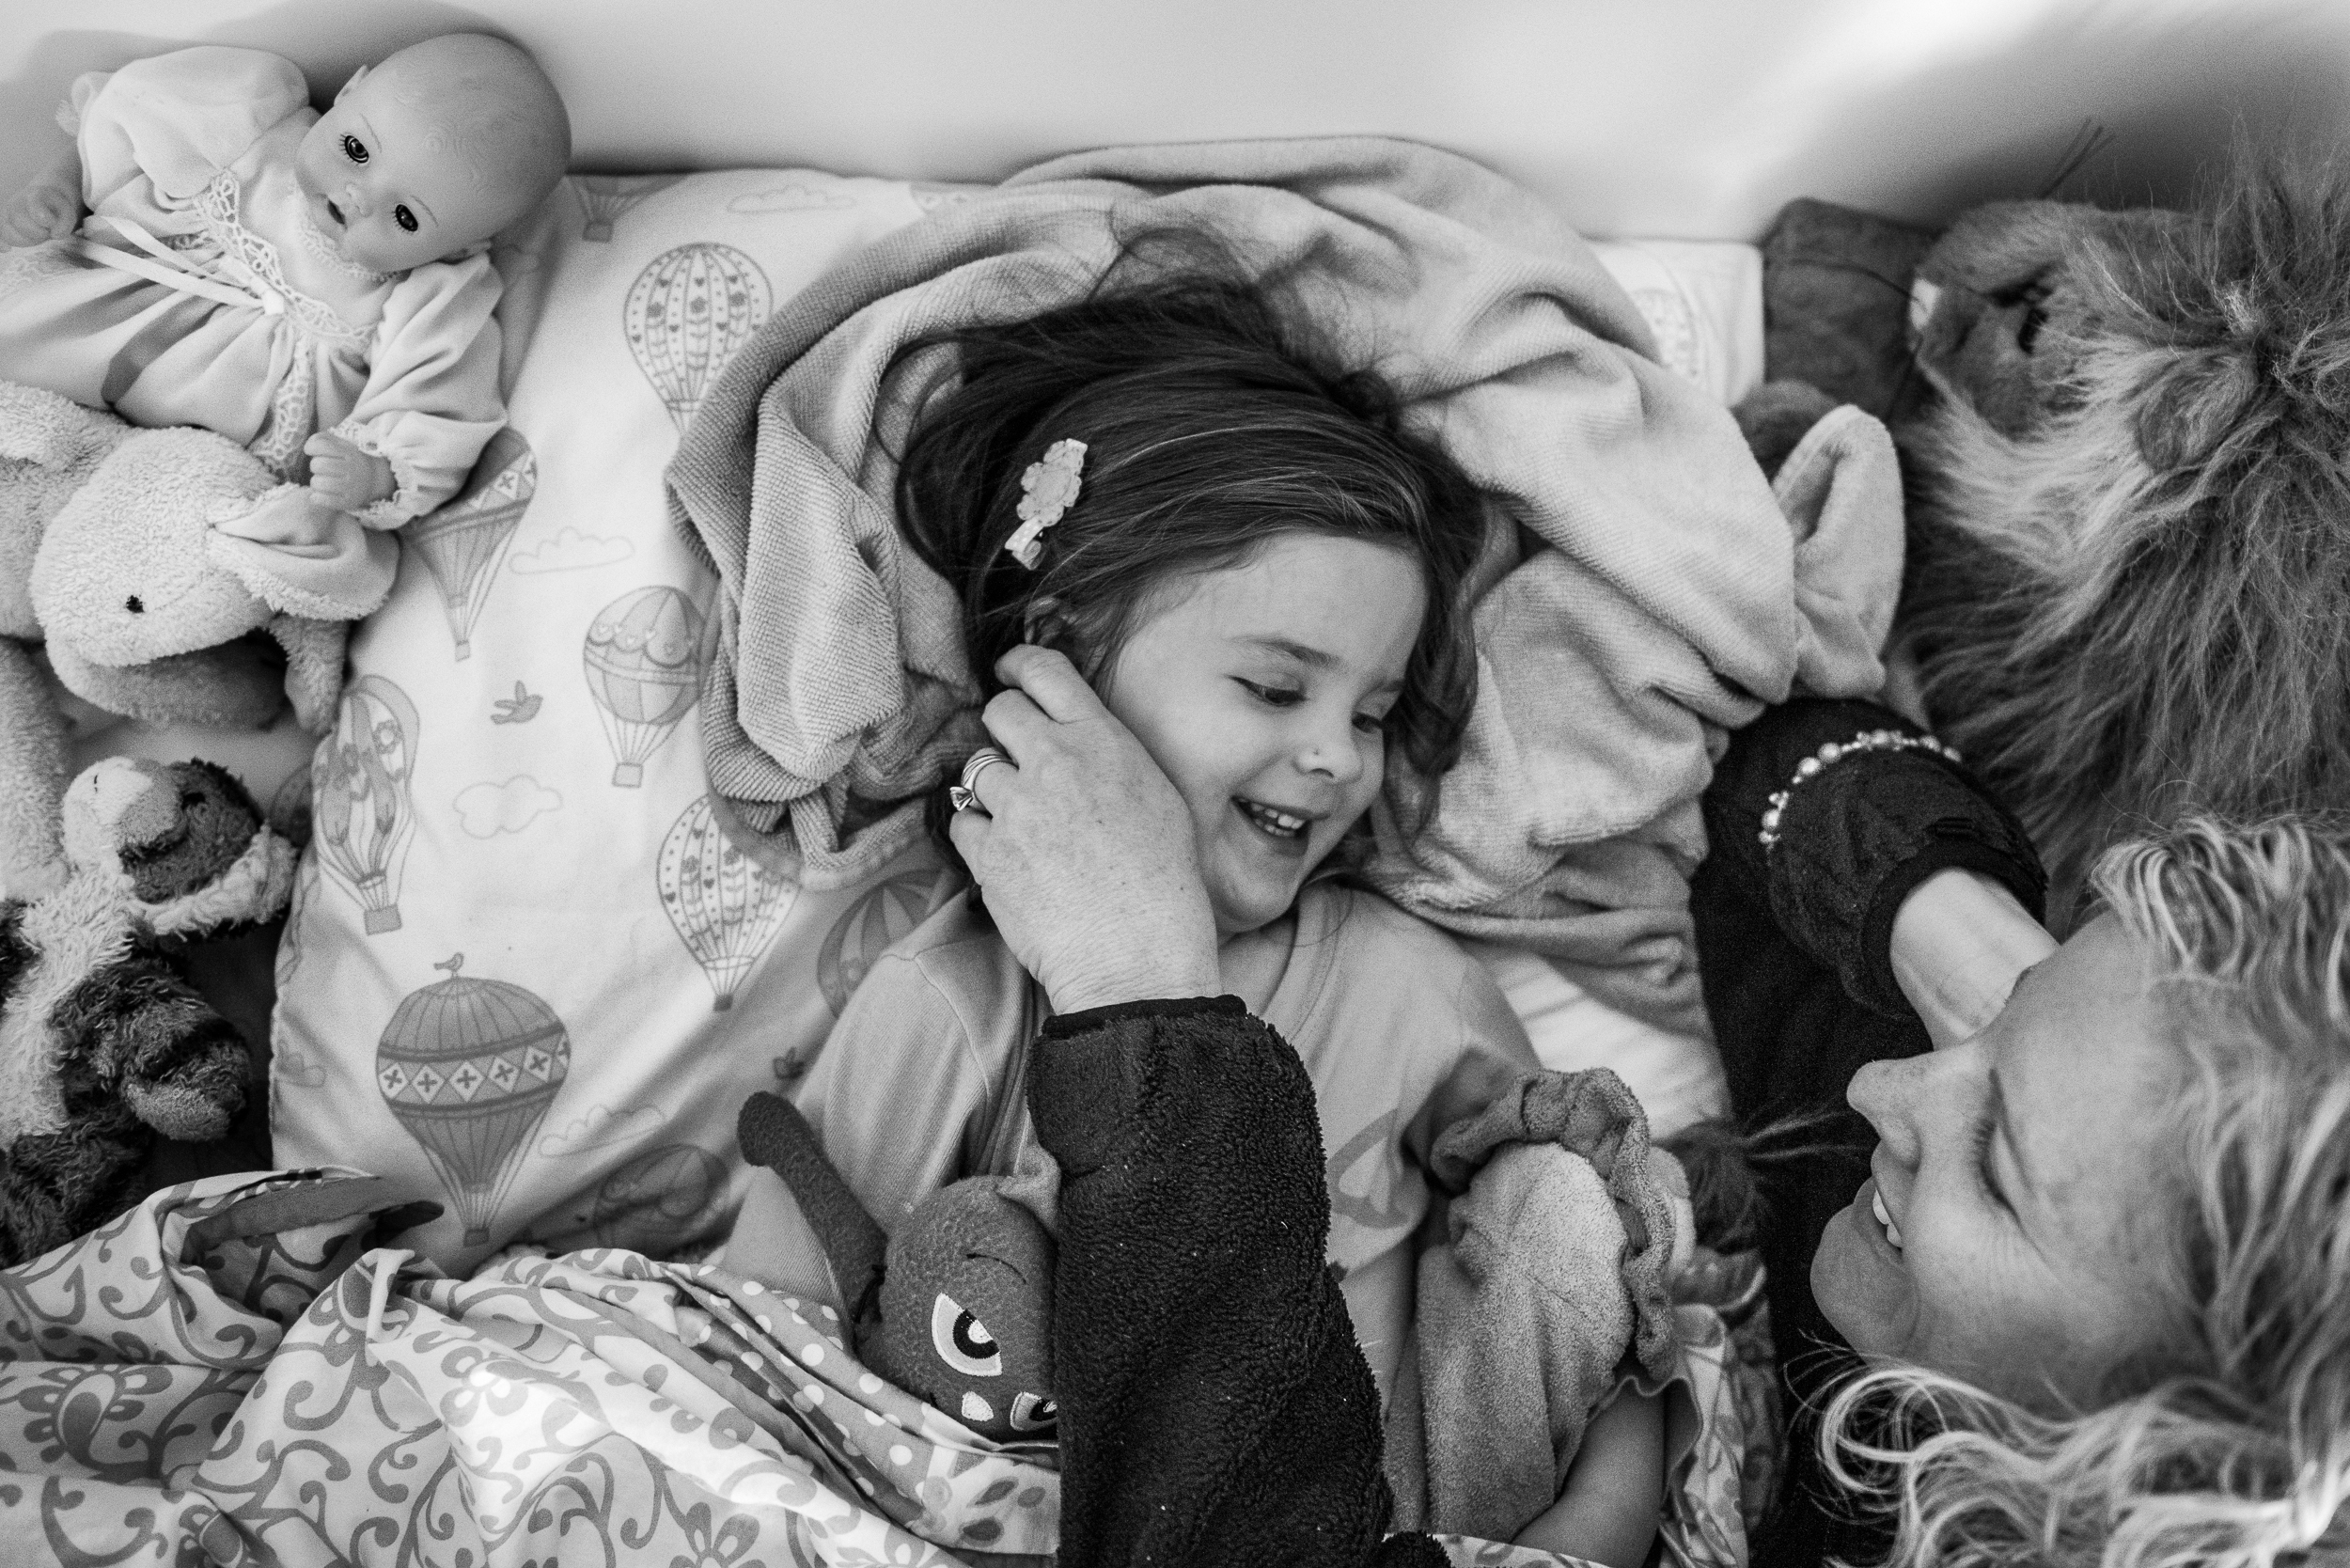 Molly Rees Photo - Black and White Documentary Family Photography - mother putting daughter to bed M. Menschel